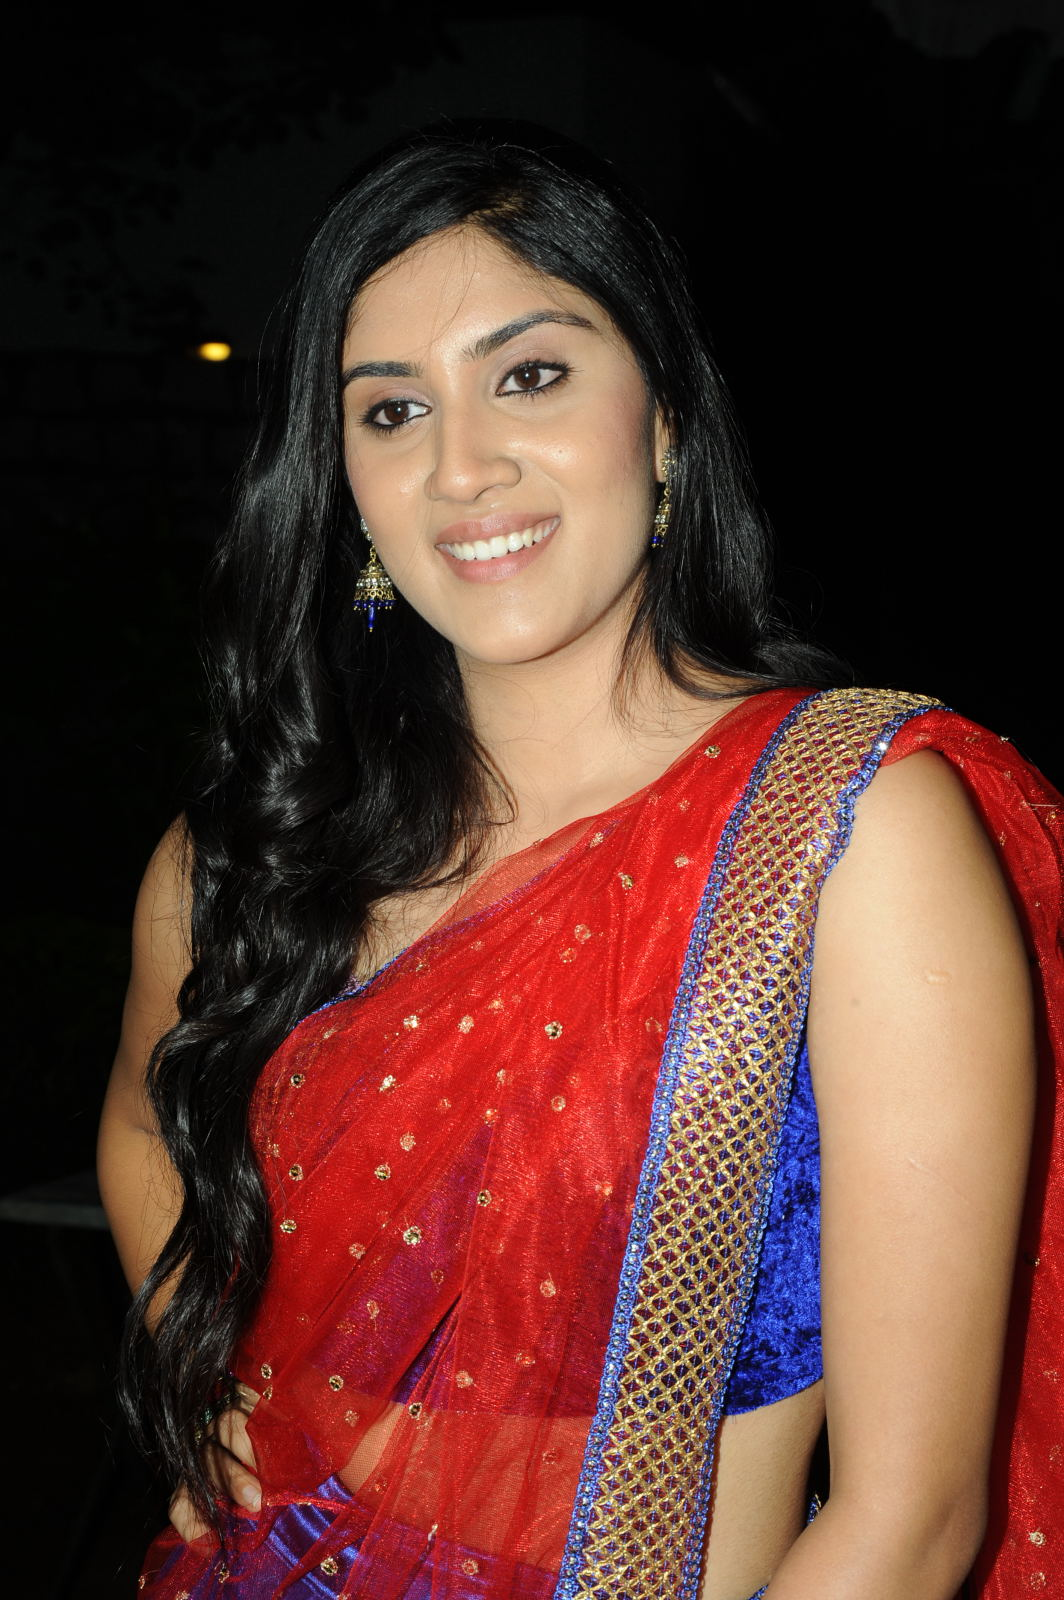 Dhanya Balakrishna in Indian Saree at Second Hand Audio Launch Event